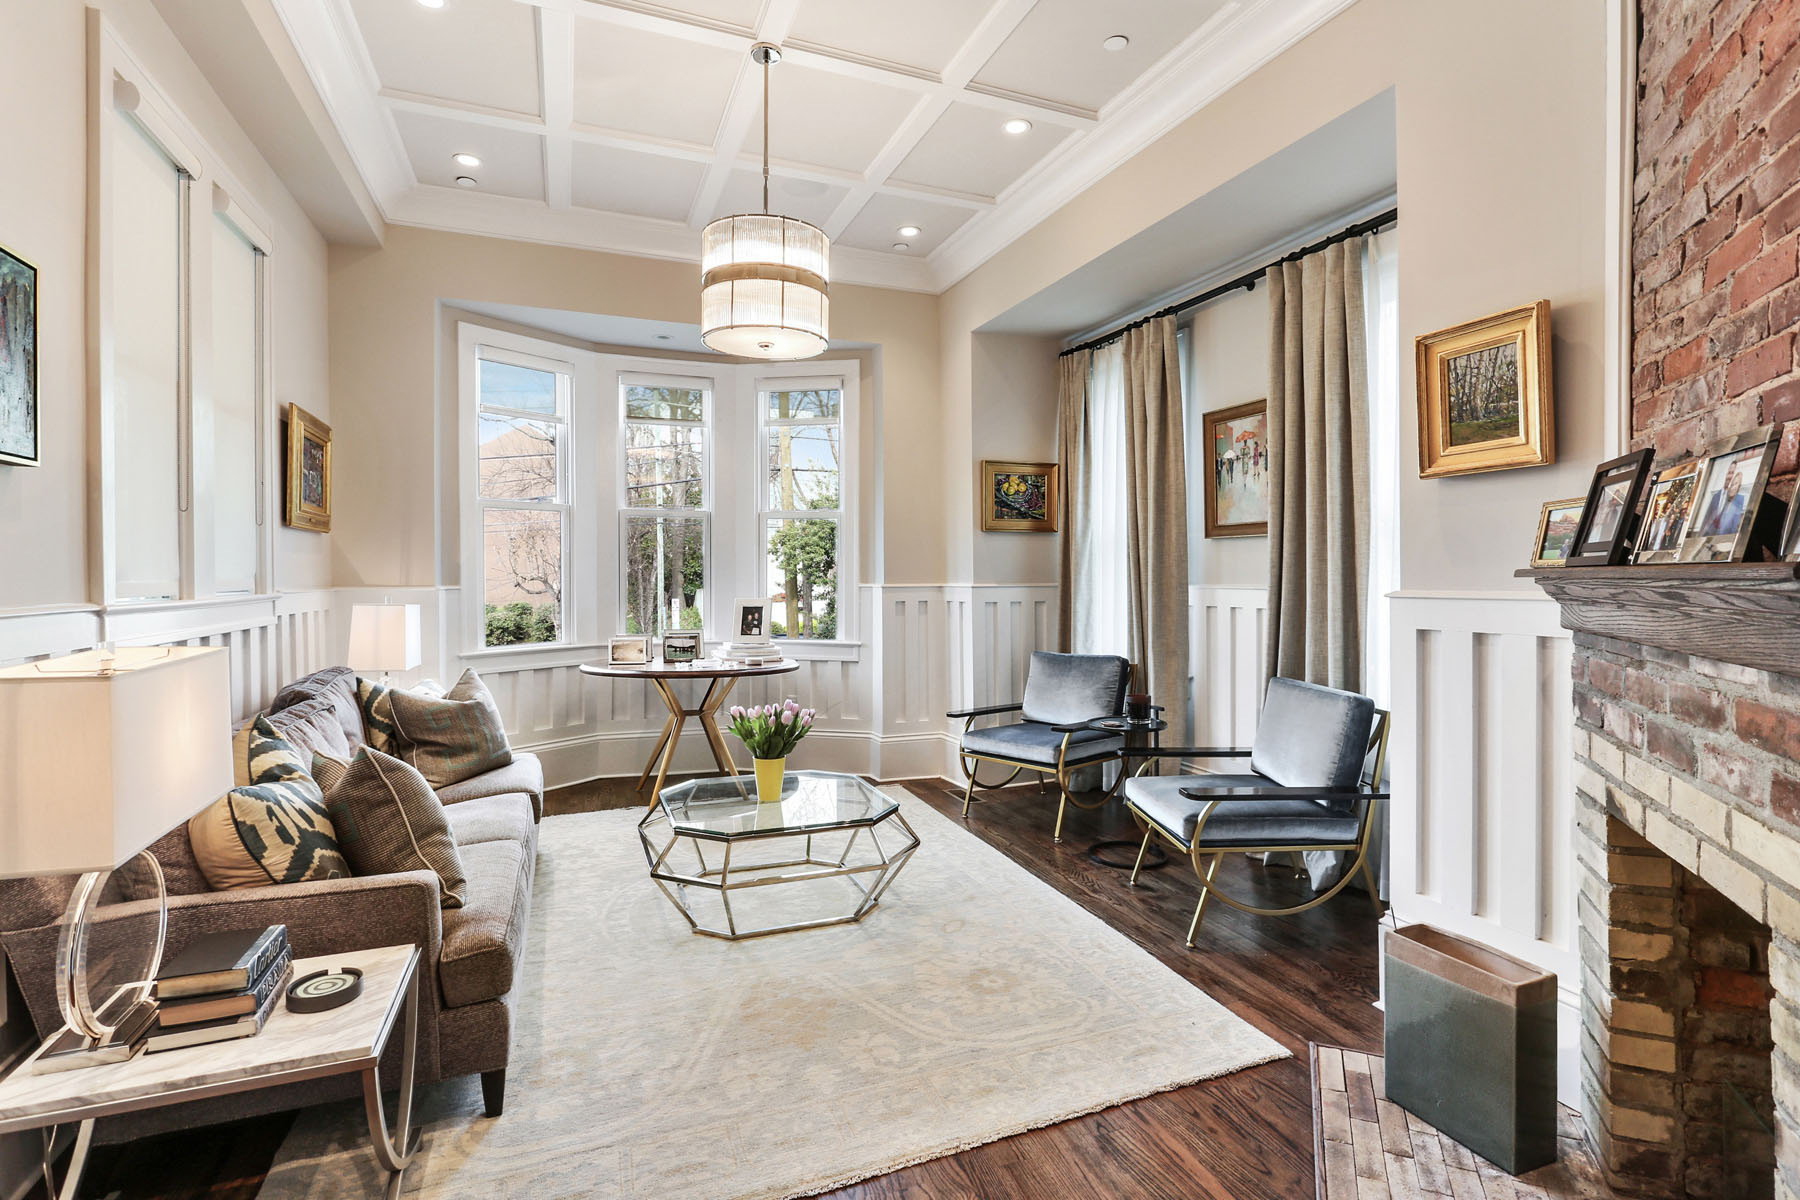 Townhouse for Sale at Stunning Colonial Townhouse in Prime Midtown Location 785 Piedmont Ave NE Unit A Atlanta, Georgia, 30308 United States